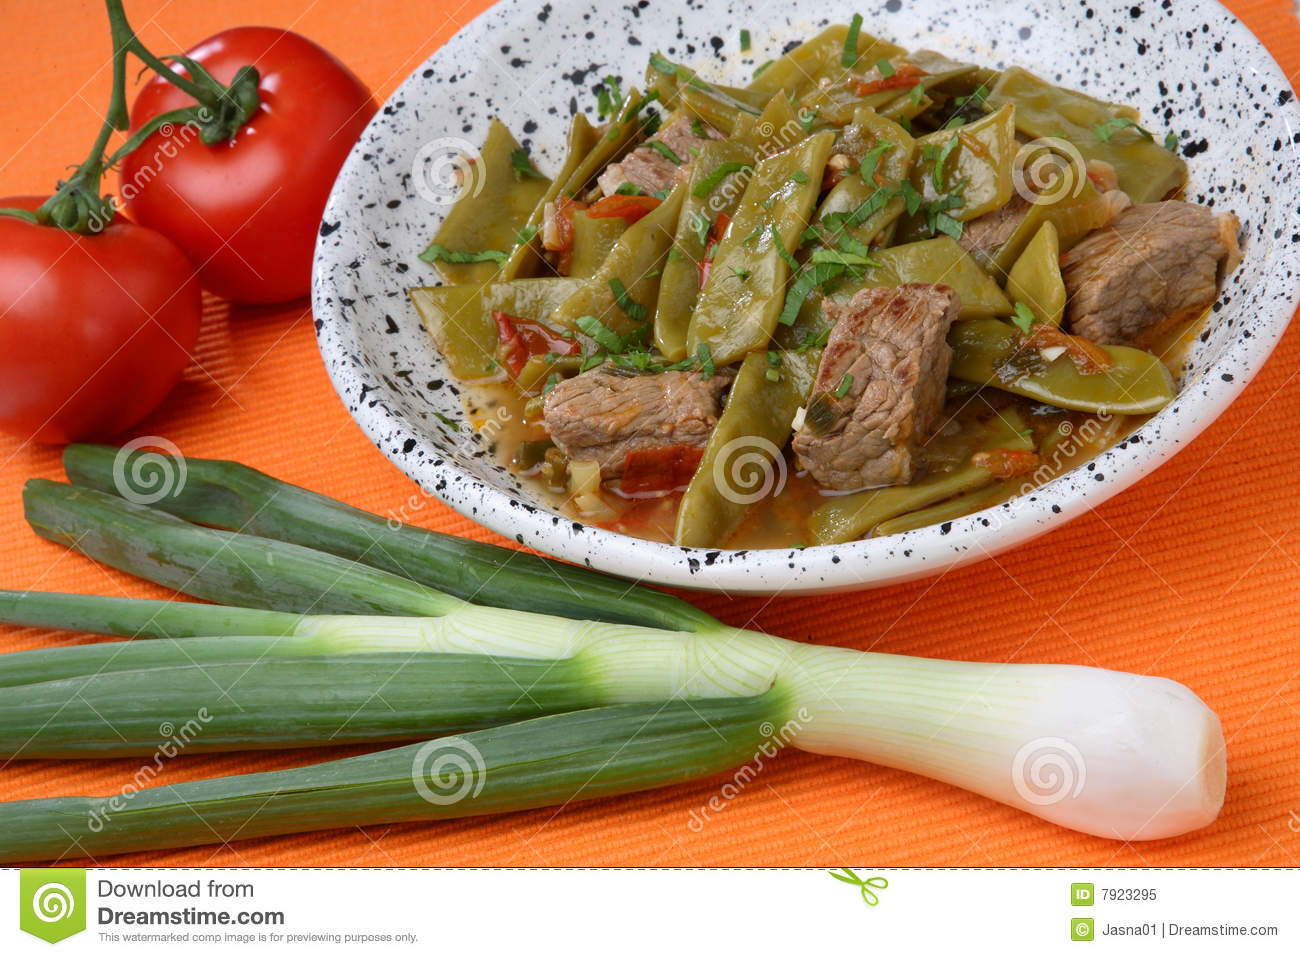 Royalty Free Stock Photo: French beans salad with meat